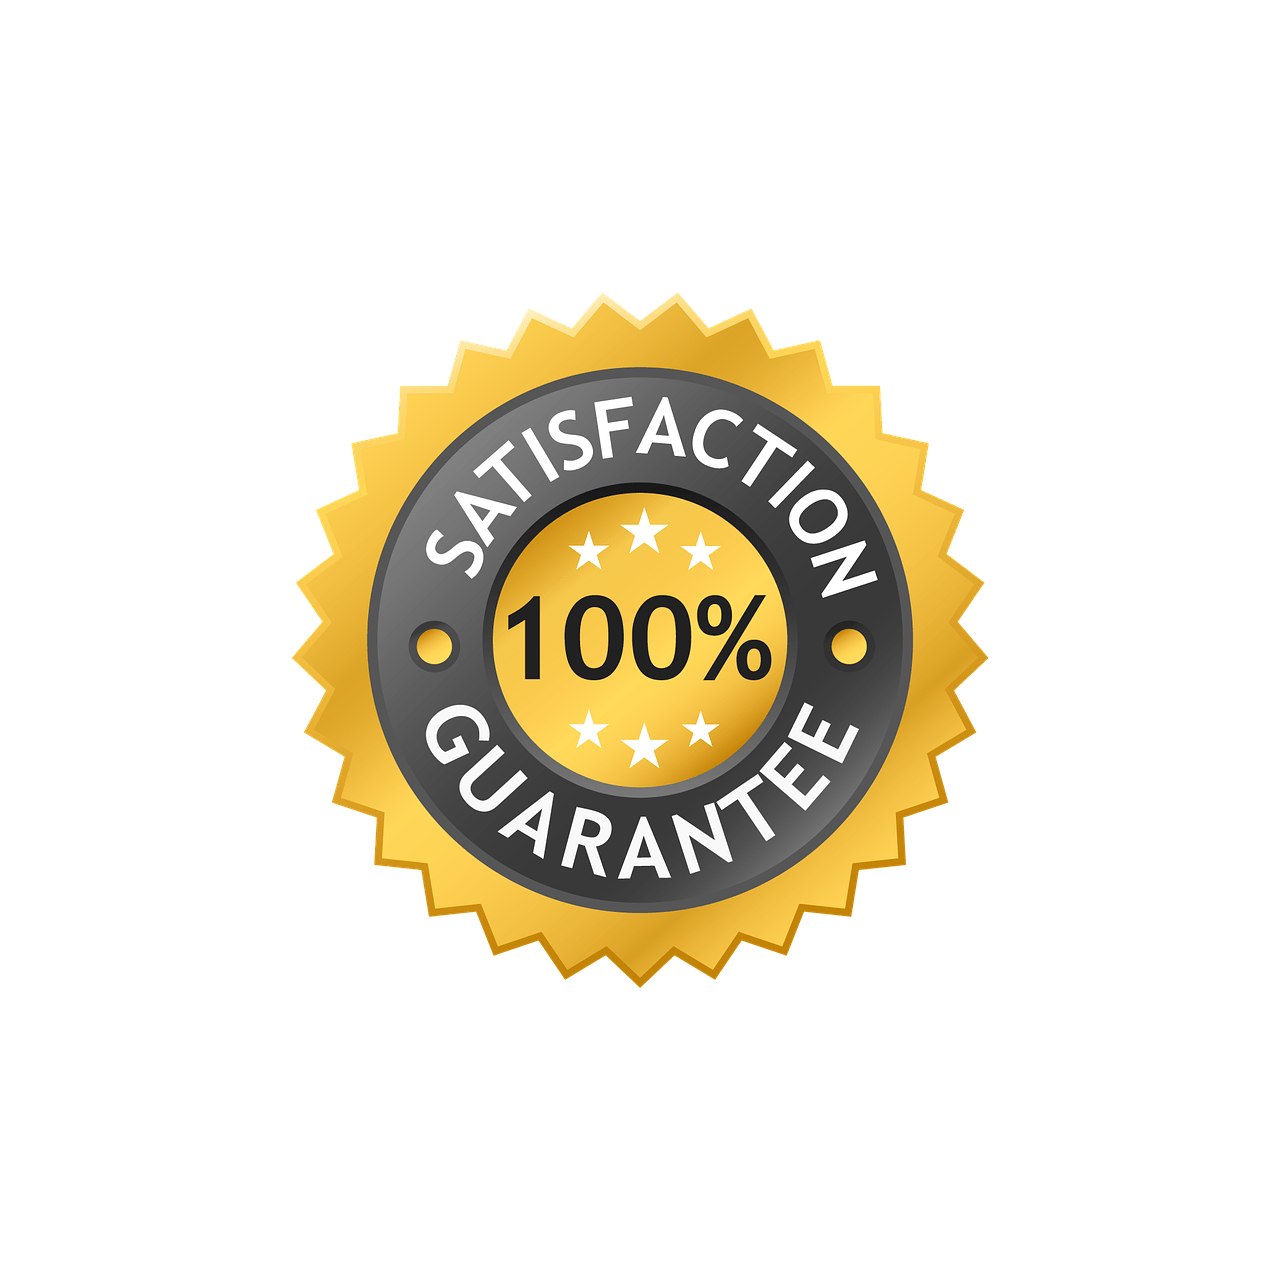 100% satisfaction or your money back